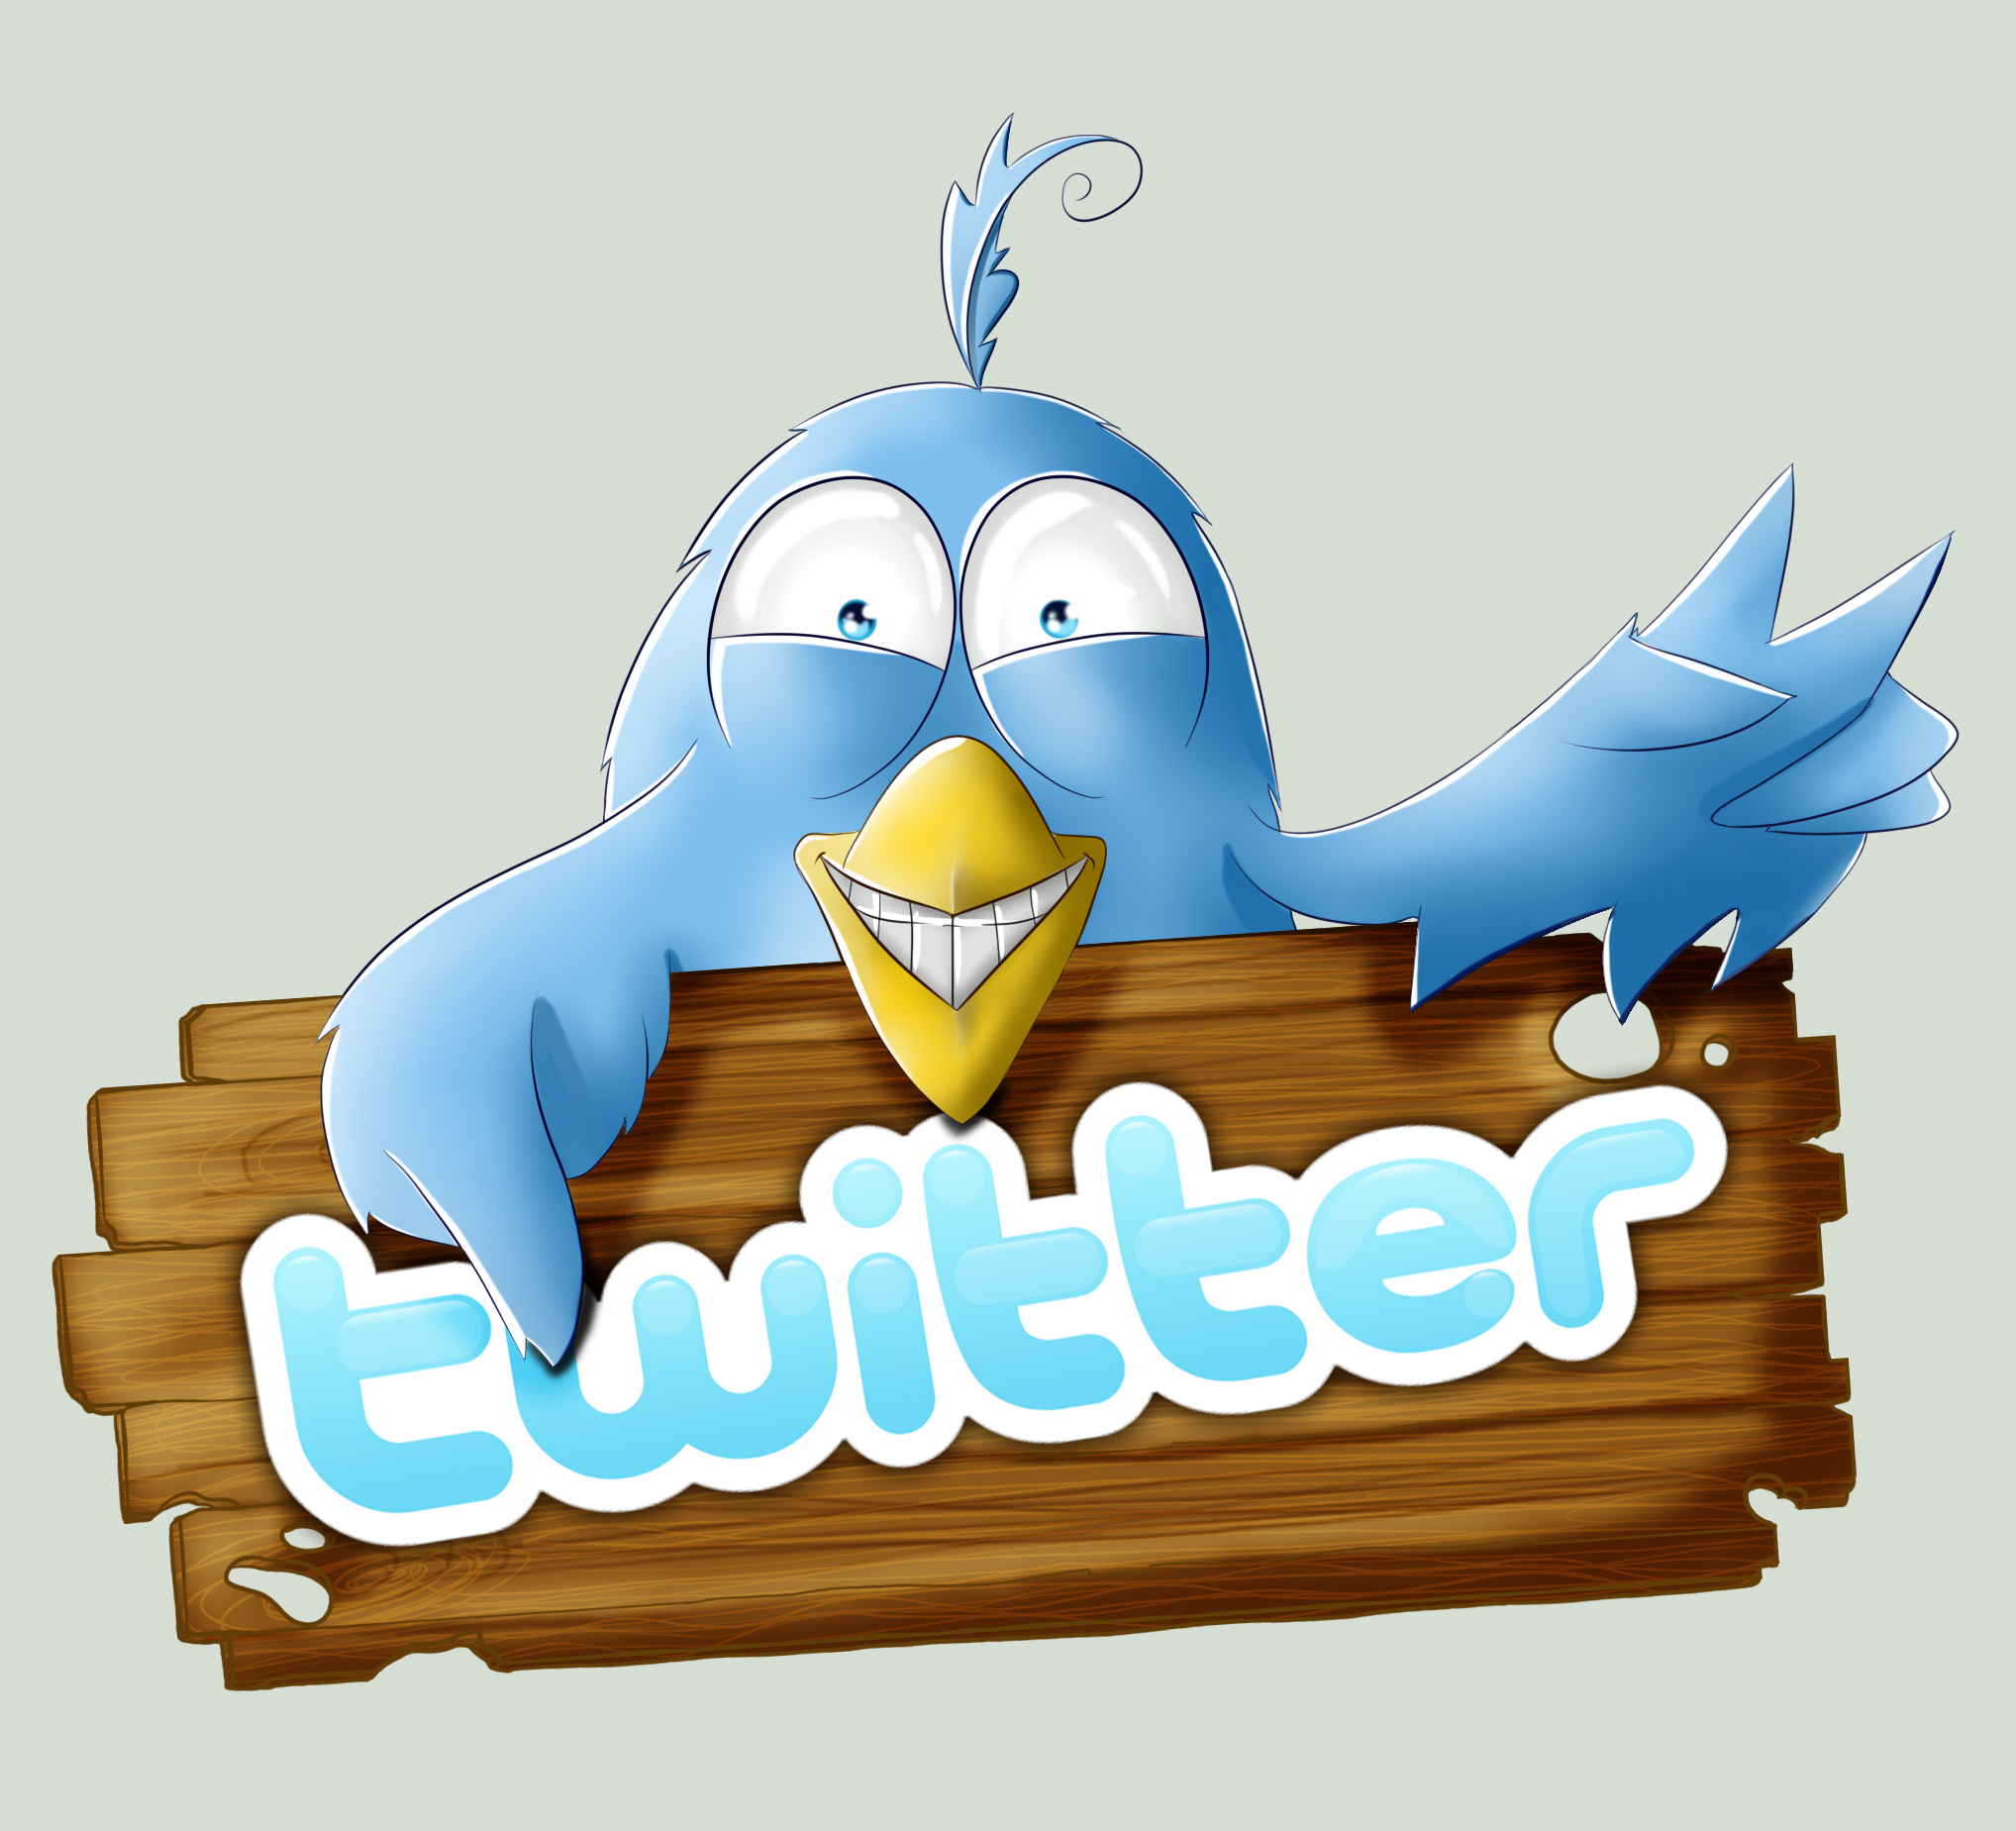 1000+ High Quality Twiter Re-tweets or Favorites Instant